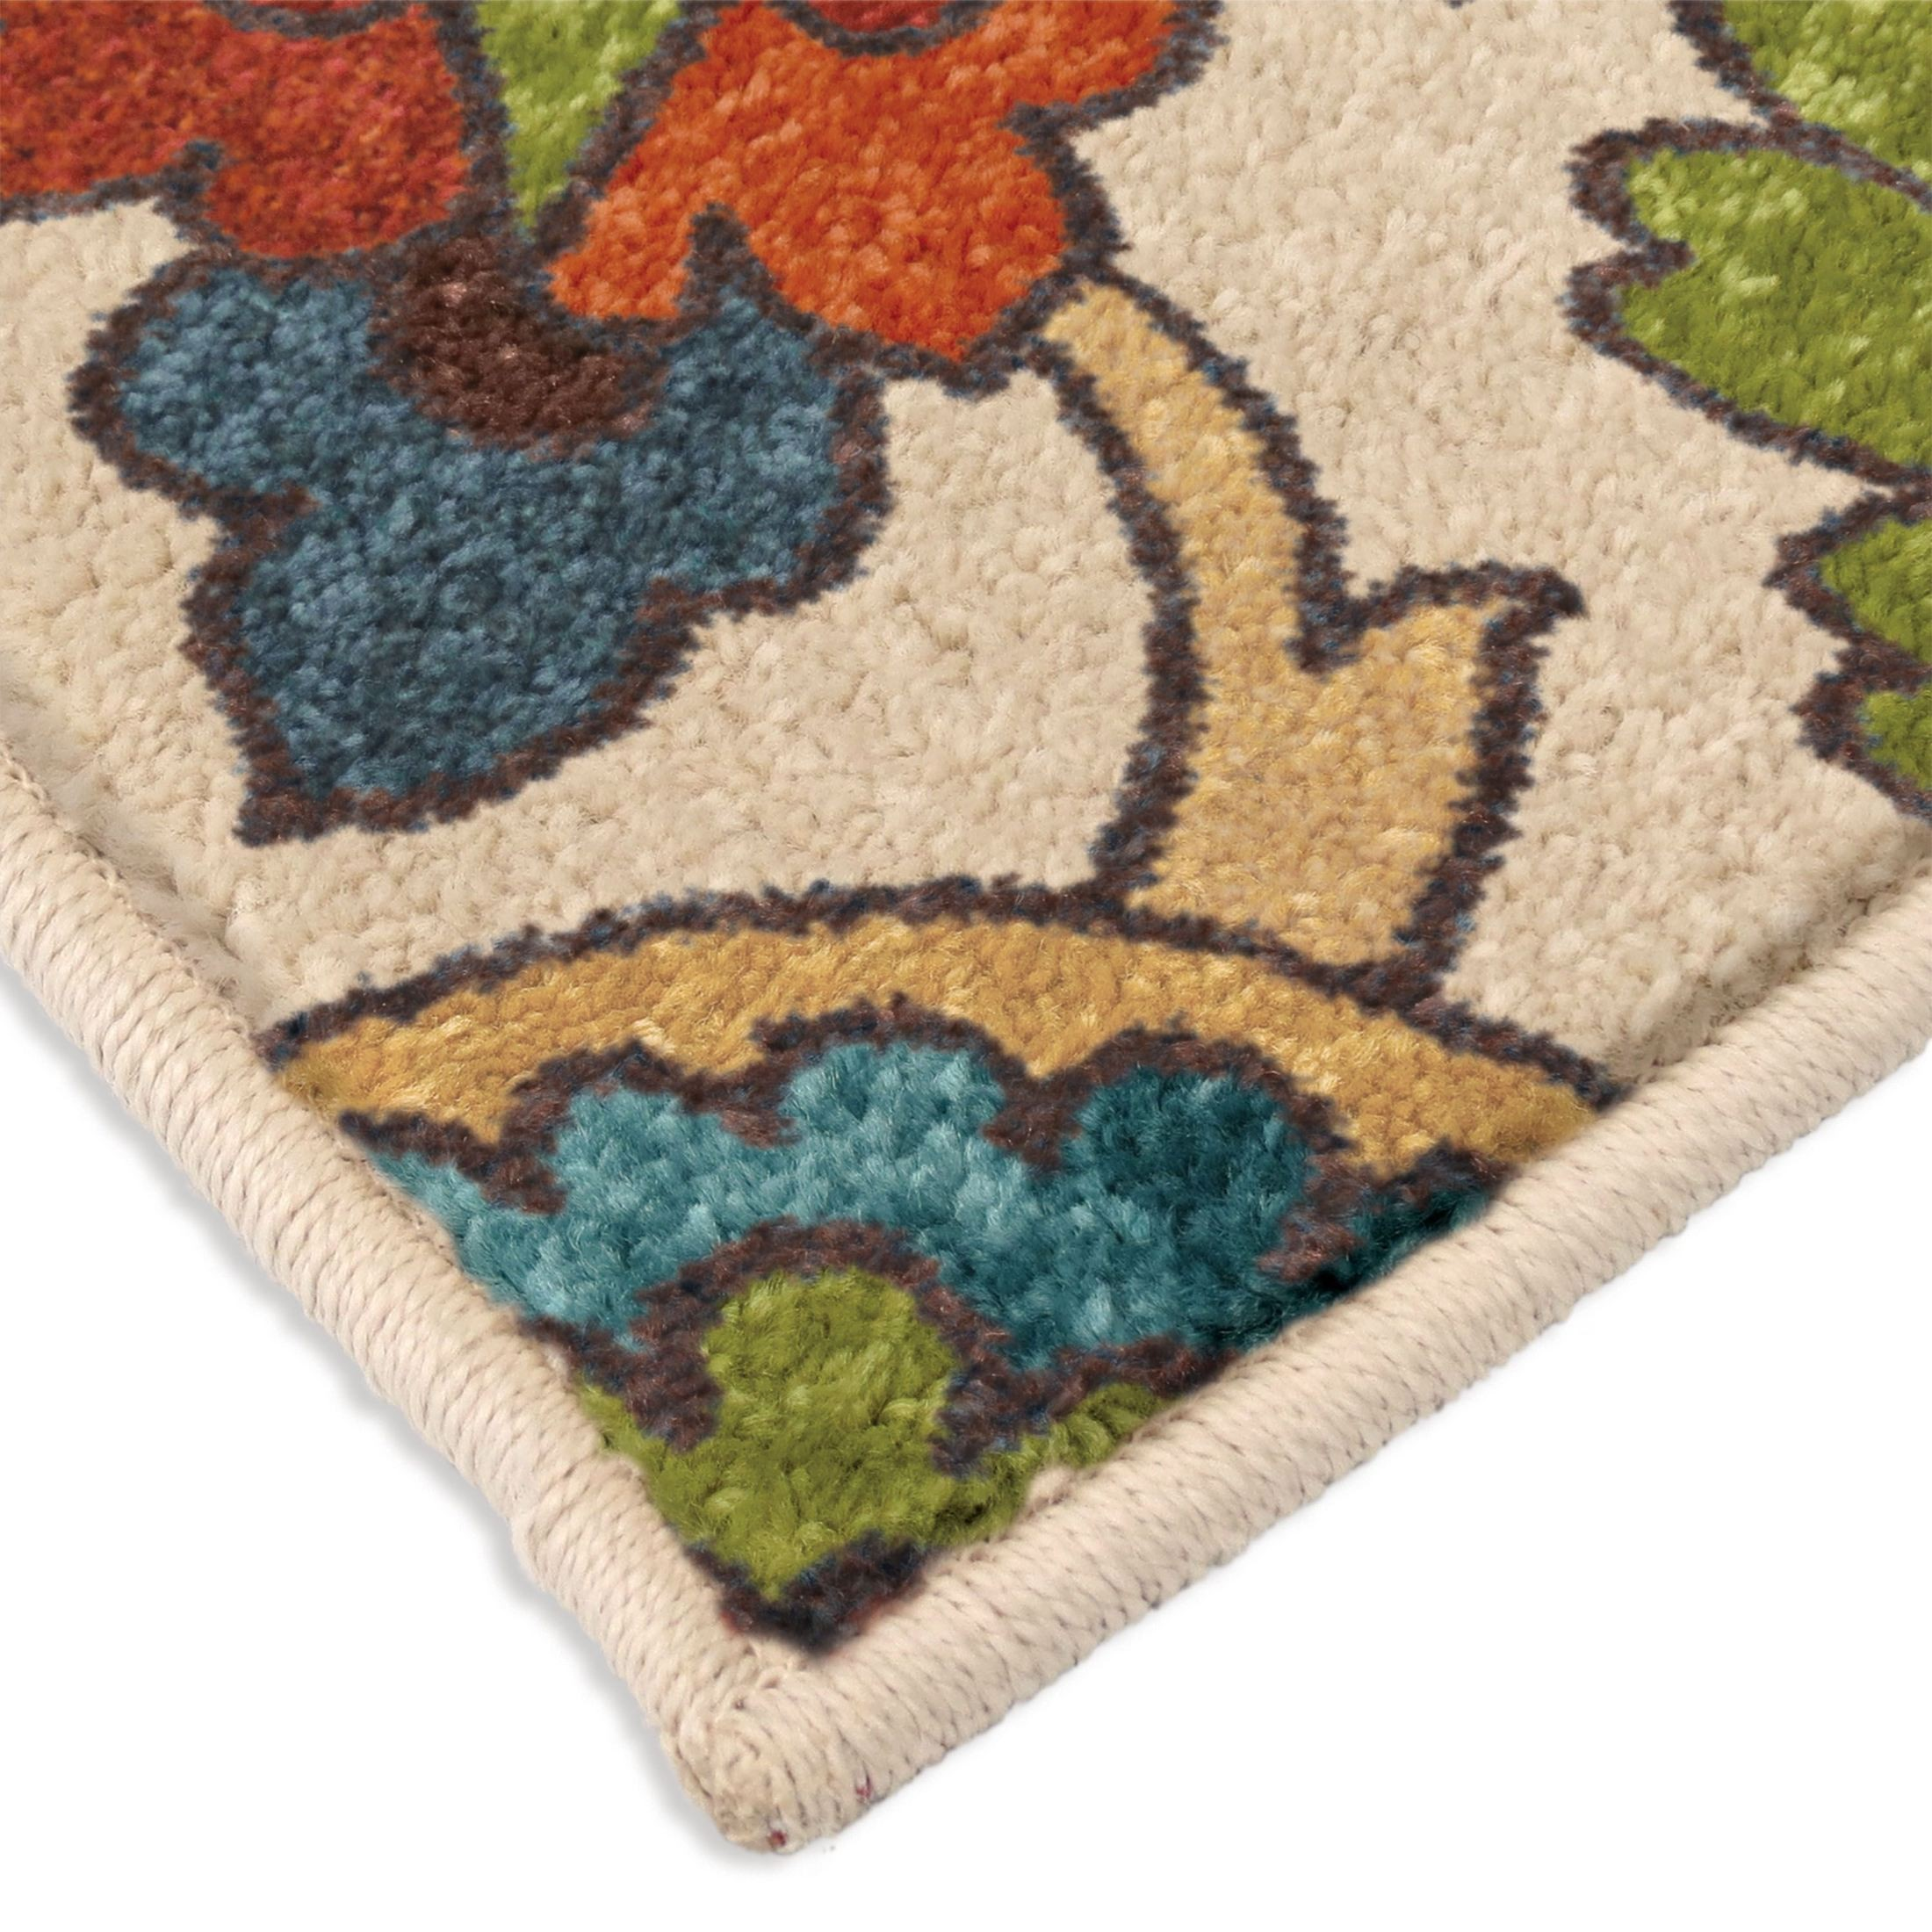 Discount 8x11 Area Rugs: Spoleto Bright Color Paisley Ginger Garden Multi Large